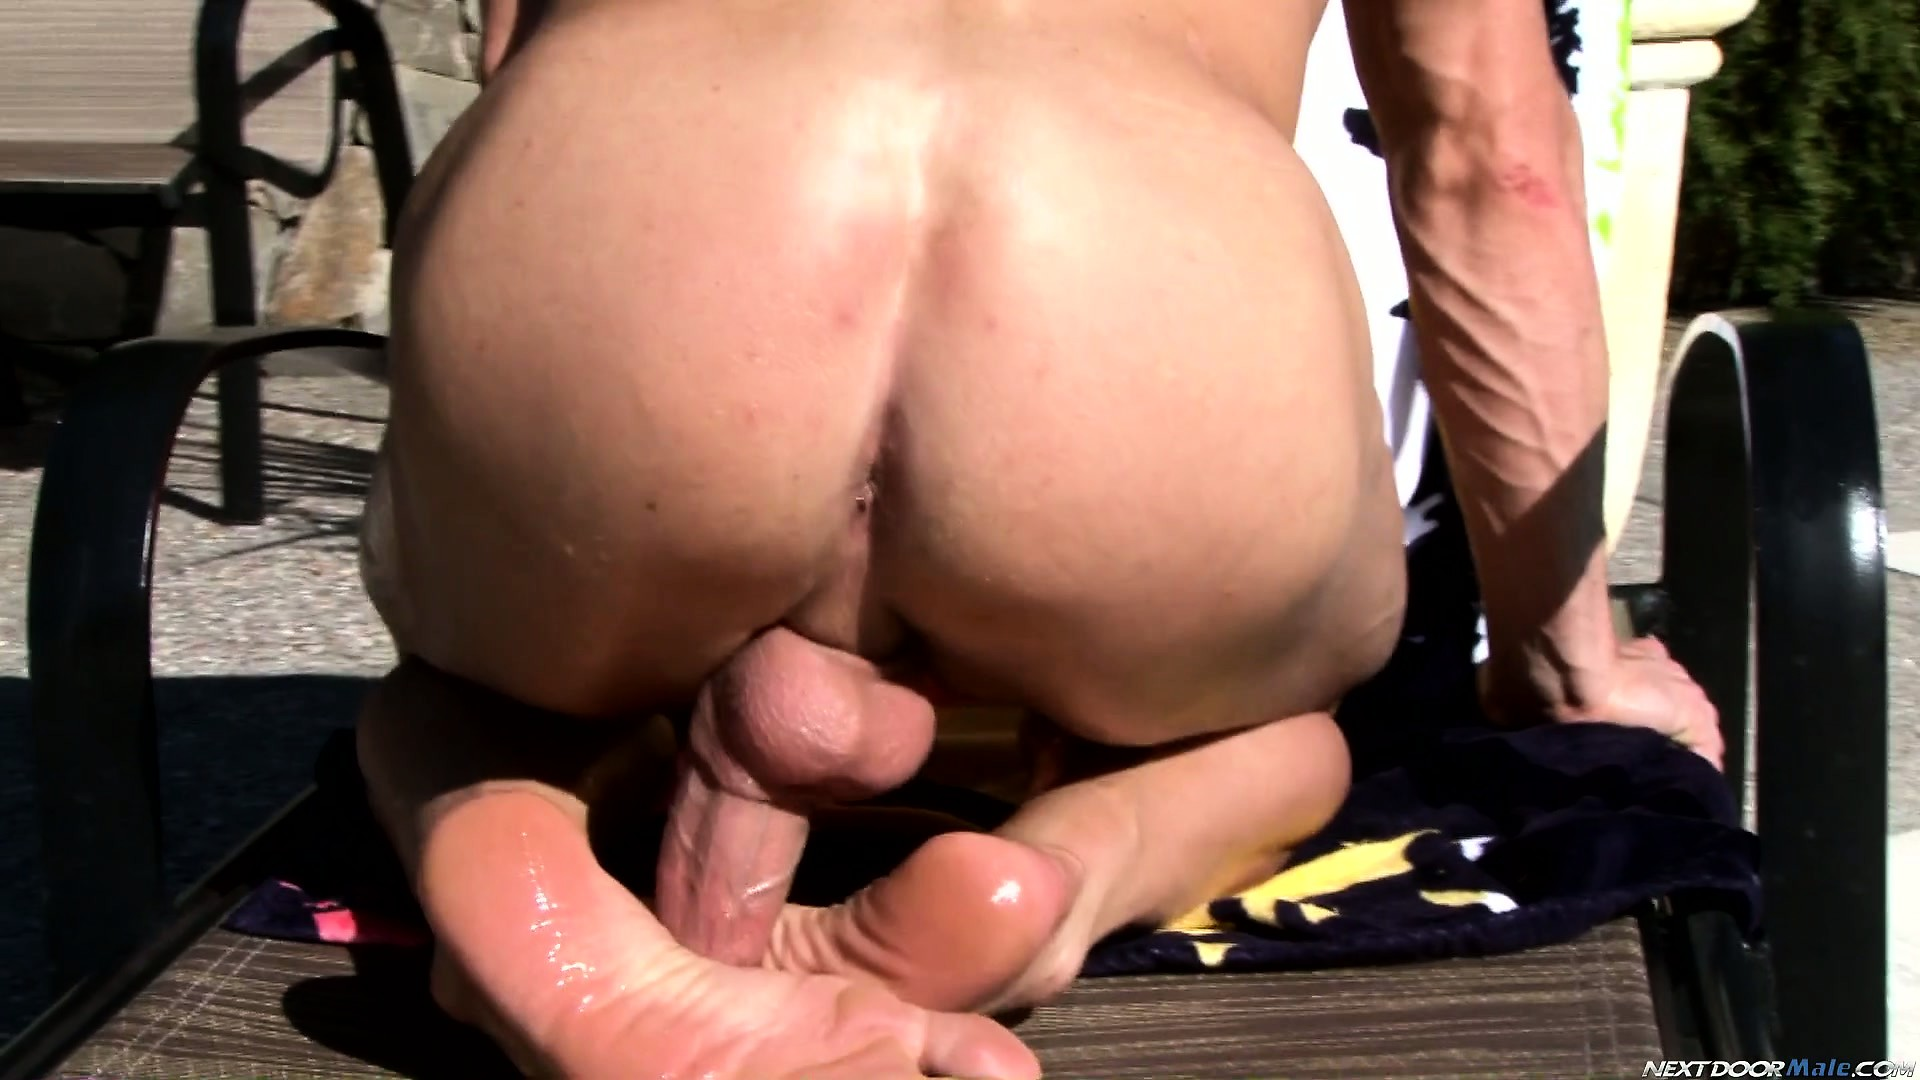 Porno Video of He Starts Jerking His Rod And Sticks It Behind Him For Some Foot Work